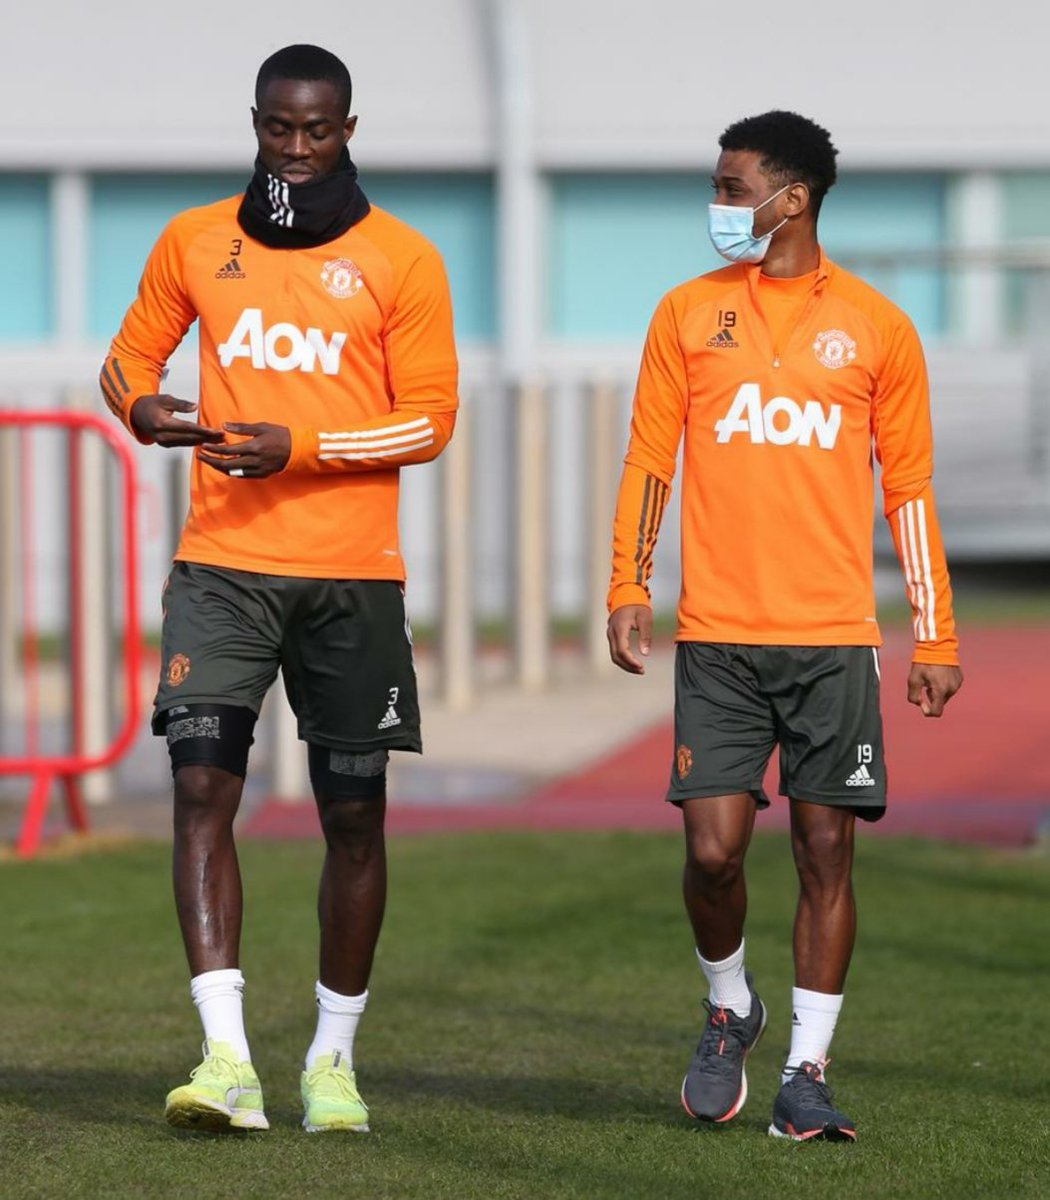 Ivorians Eric Bailly and Amad Diallo head out for training 🇨🇮 #MUFC #GGMU #ivorycoast